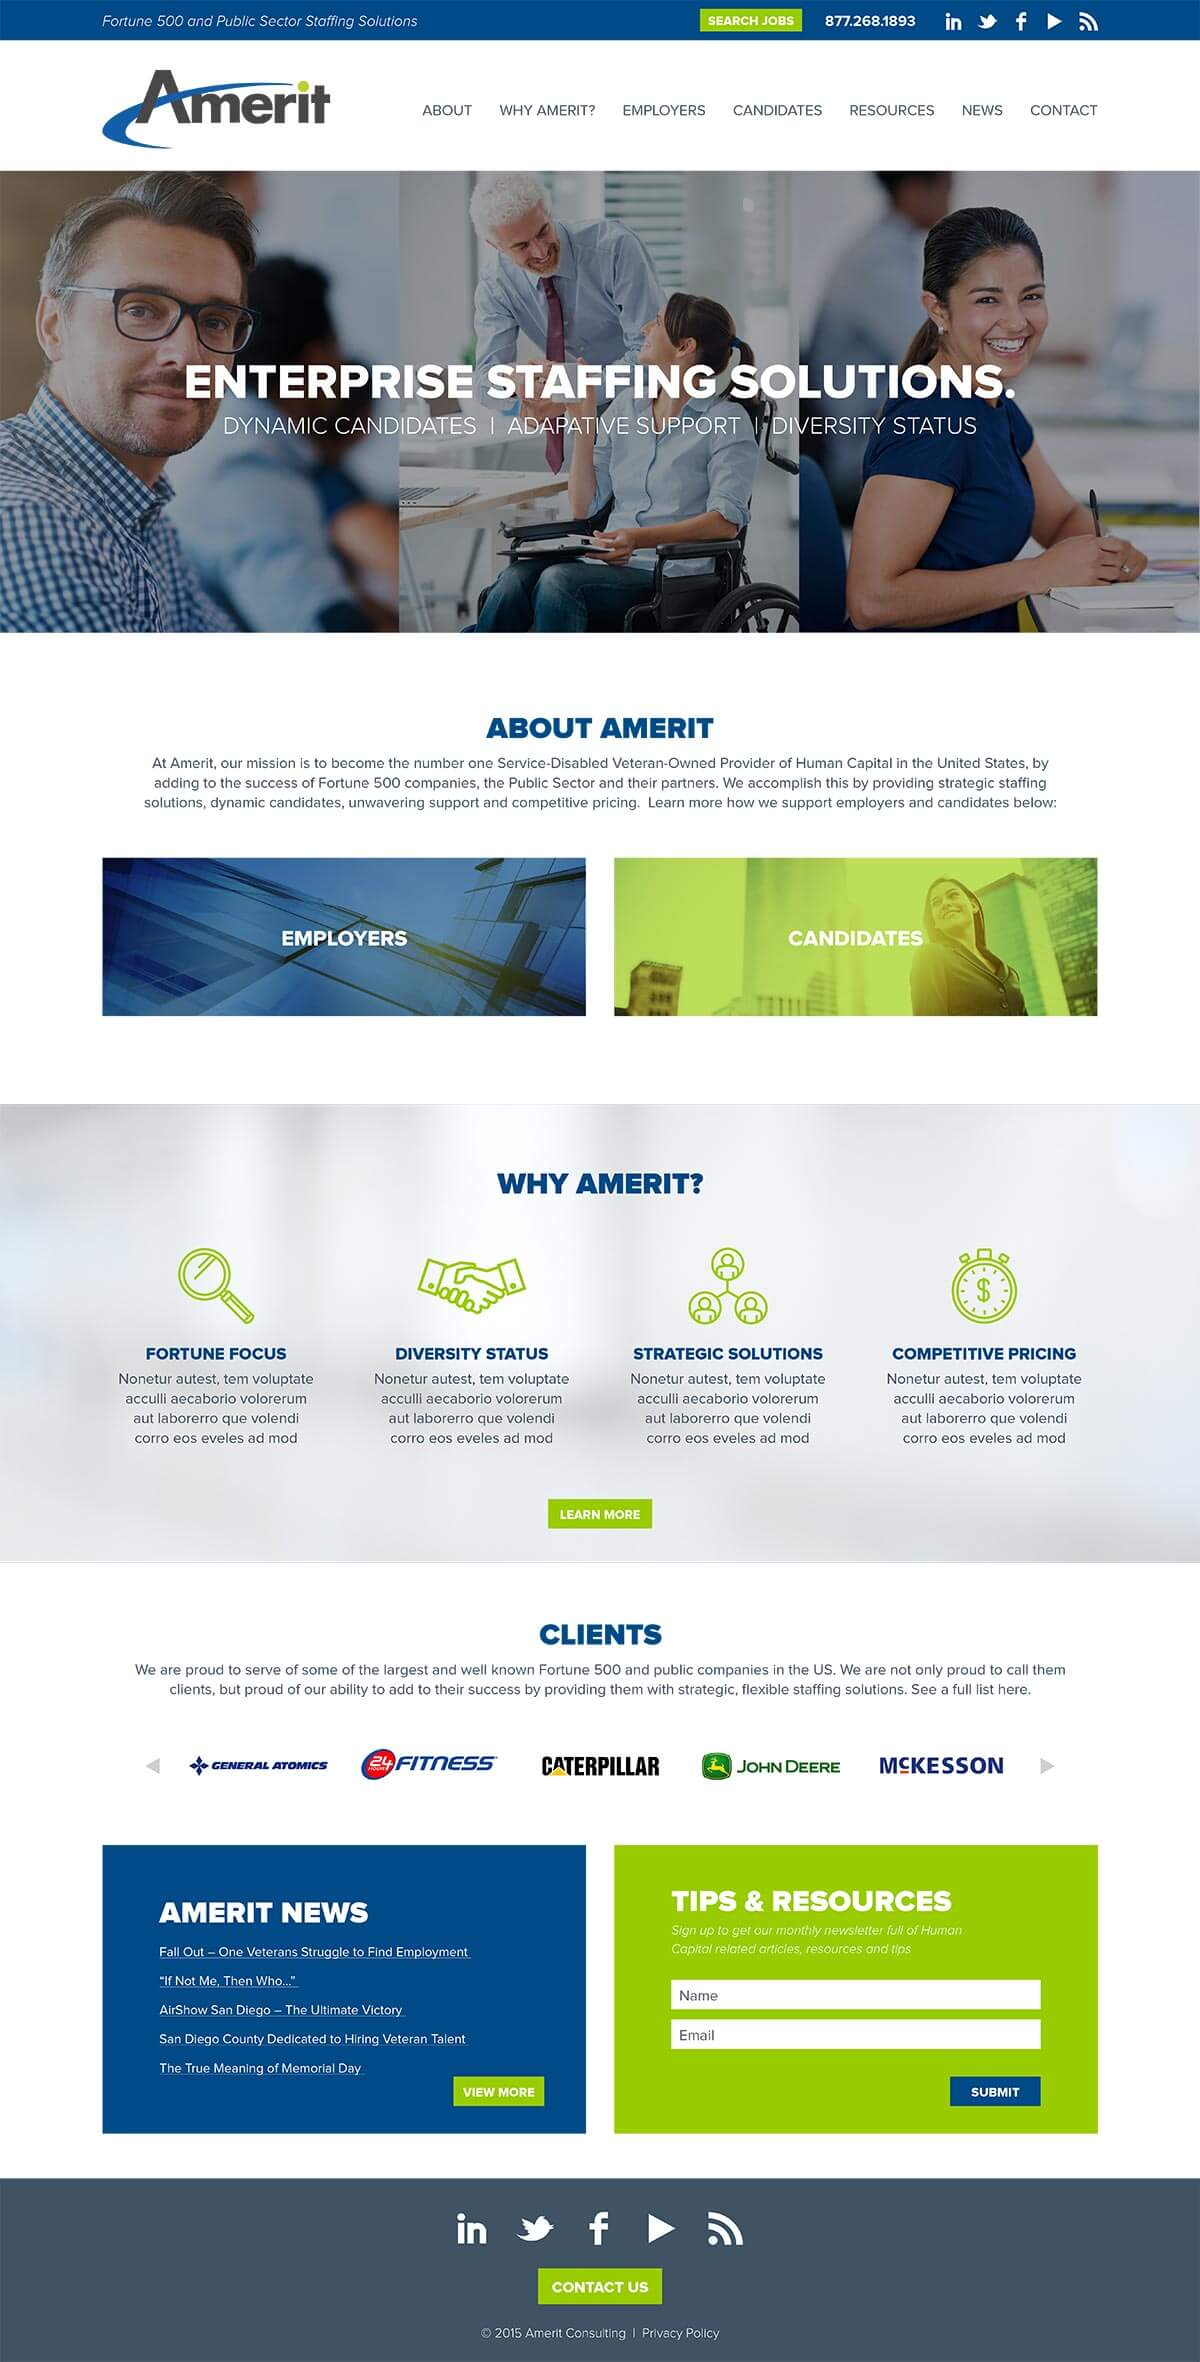 Web design for consulting staffing firm staffing for Web design consultant